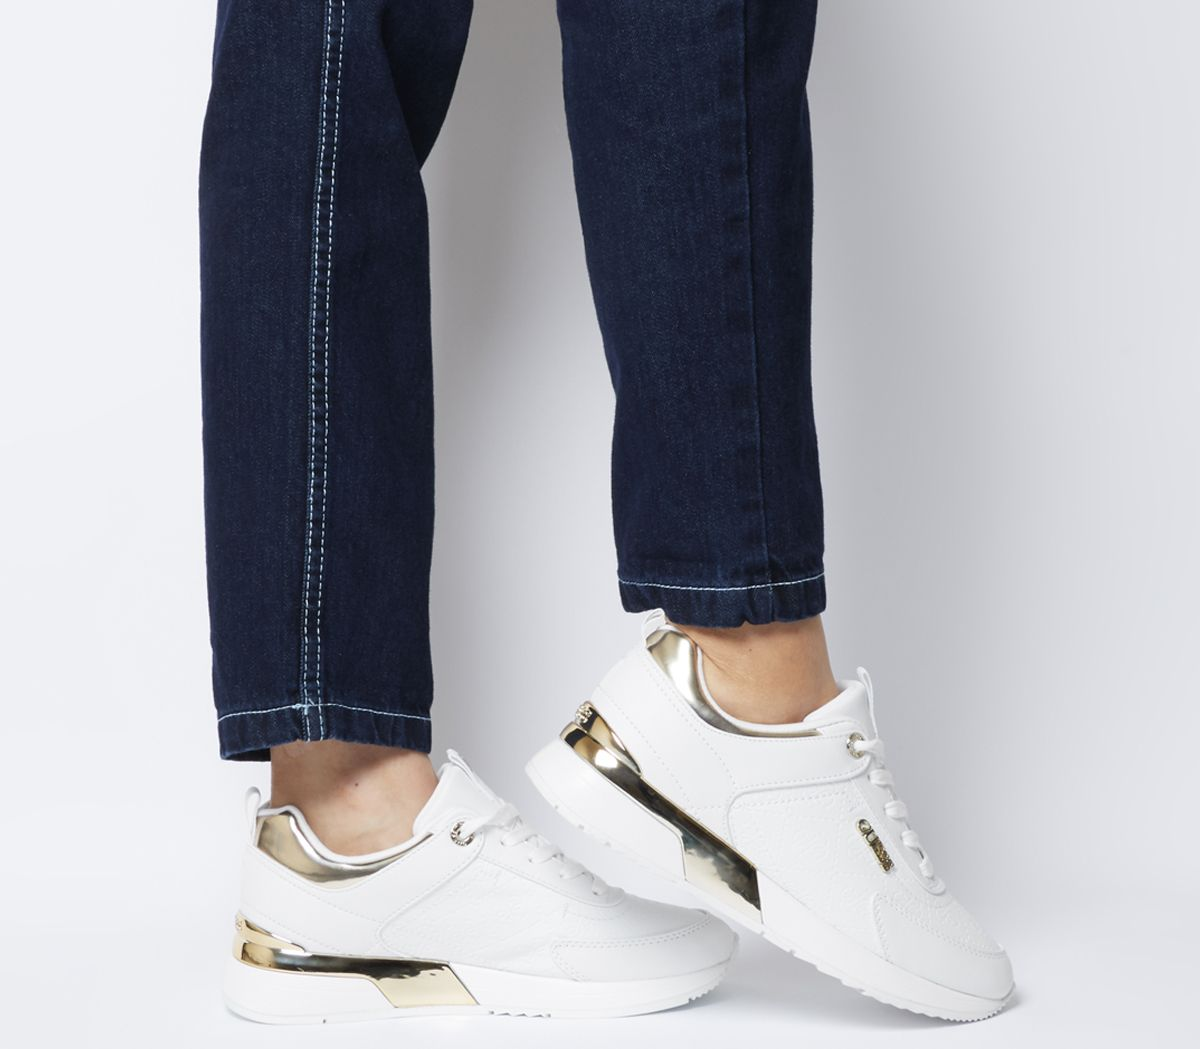 08bb692f9ef Guess Marlyn Sneakers White Gold - Flats